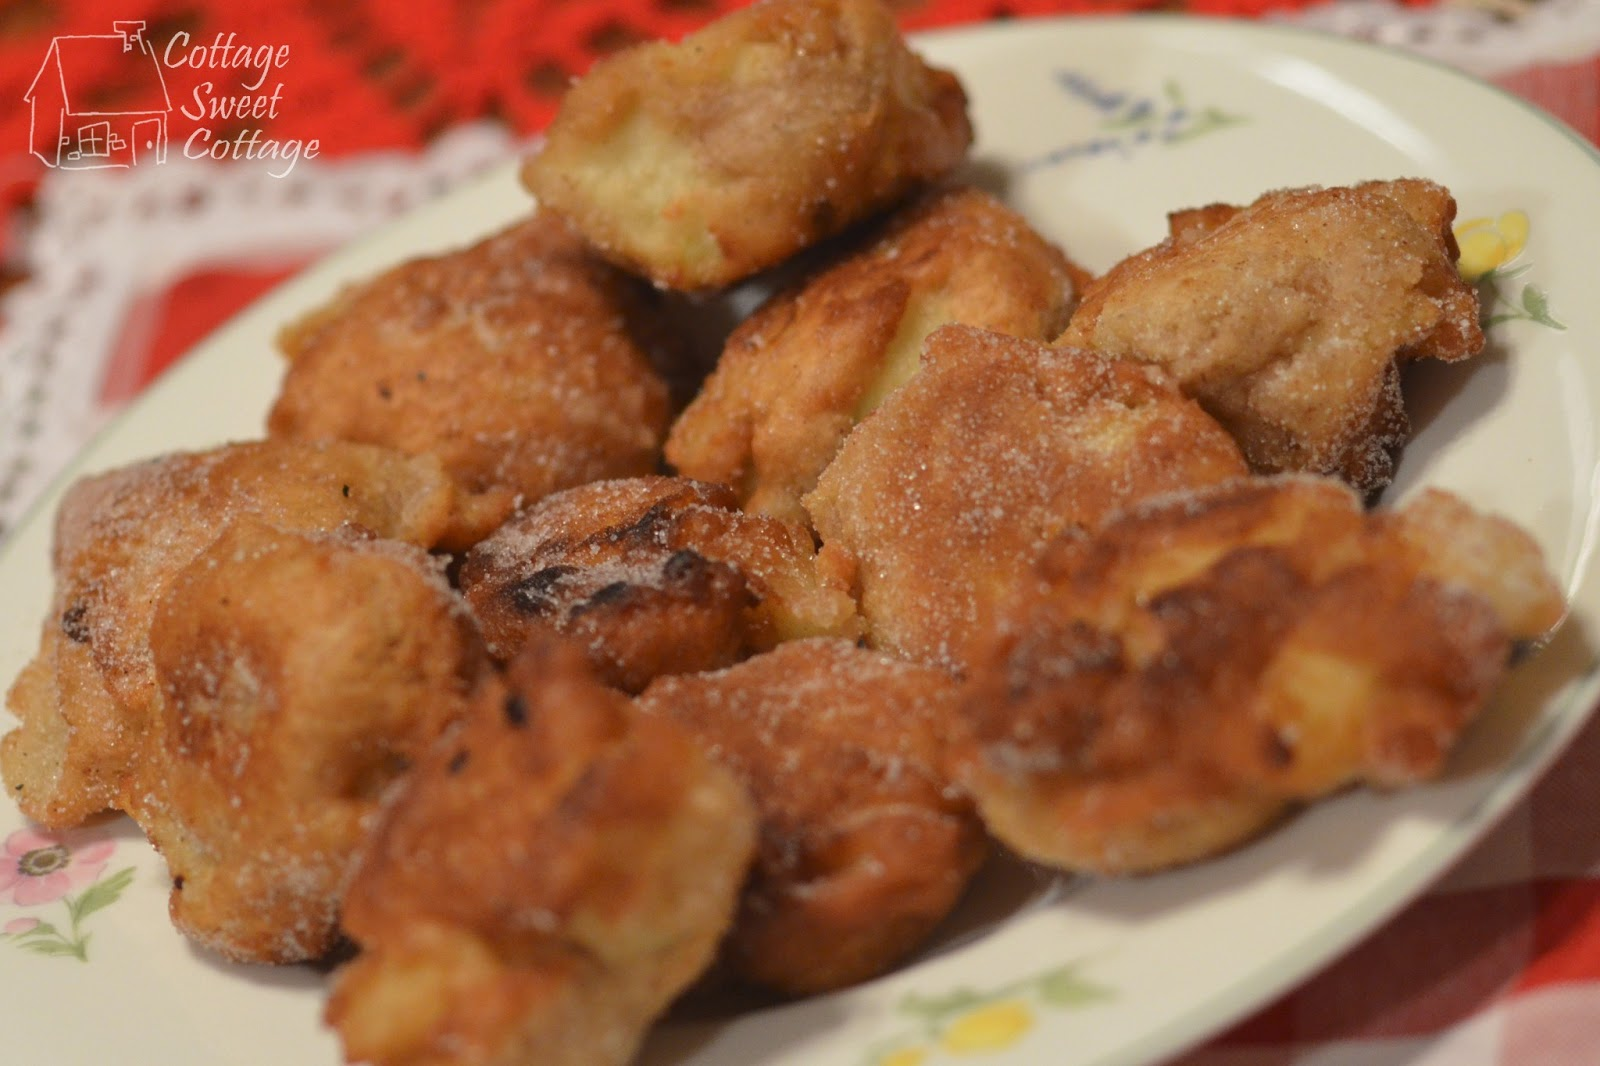 Cottage sweet cottage homemade apple fritters